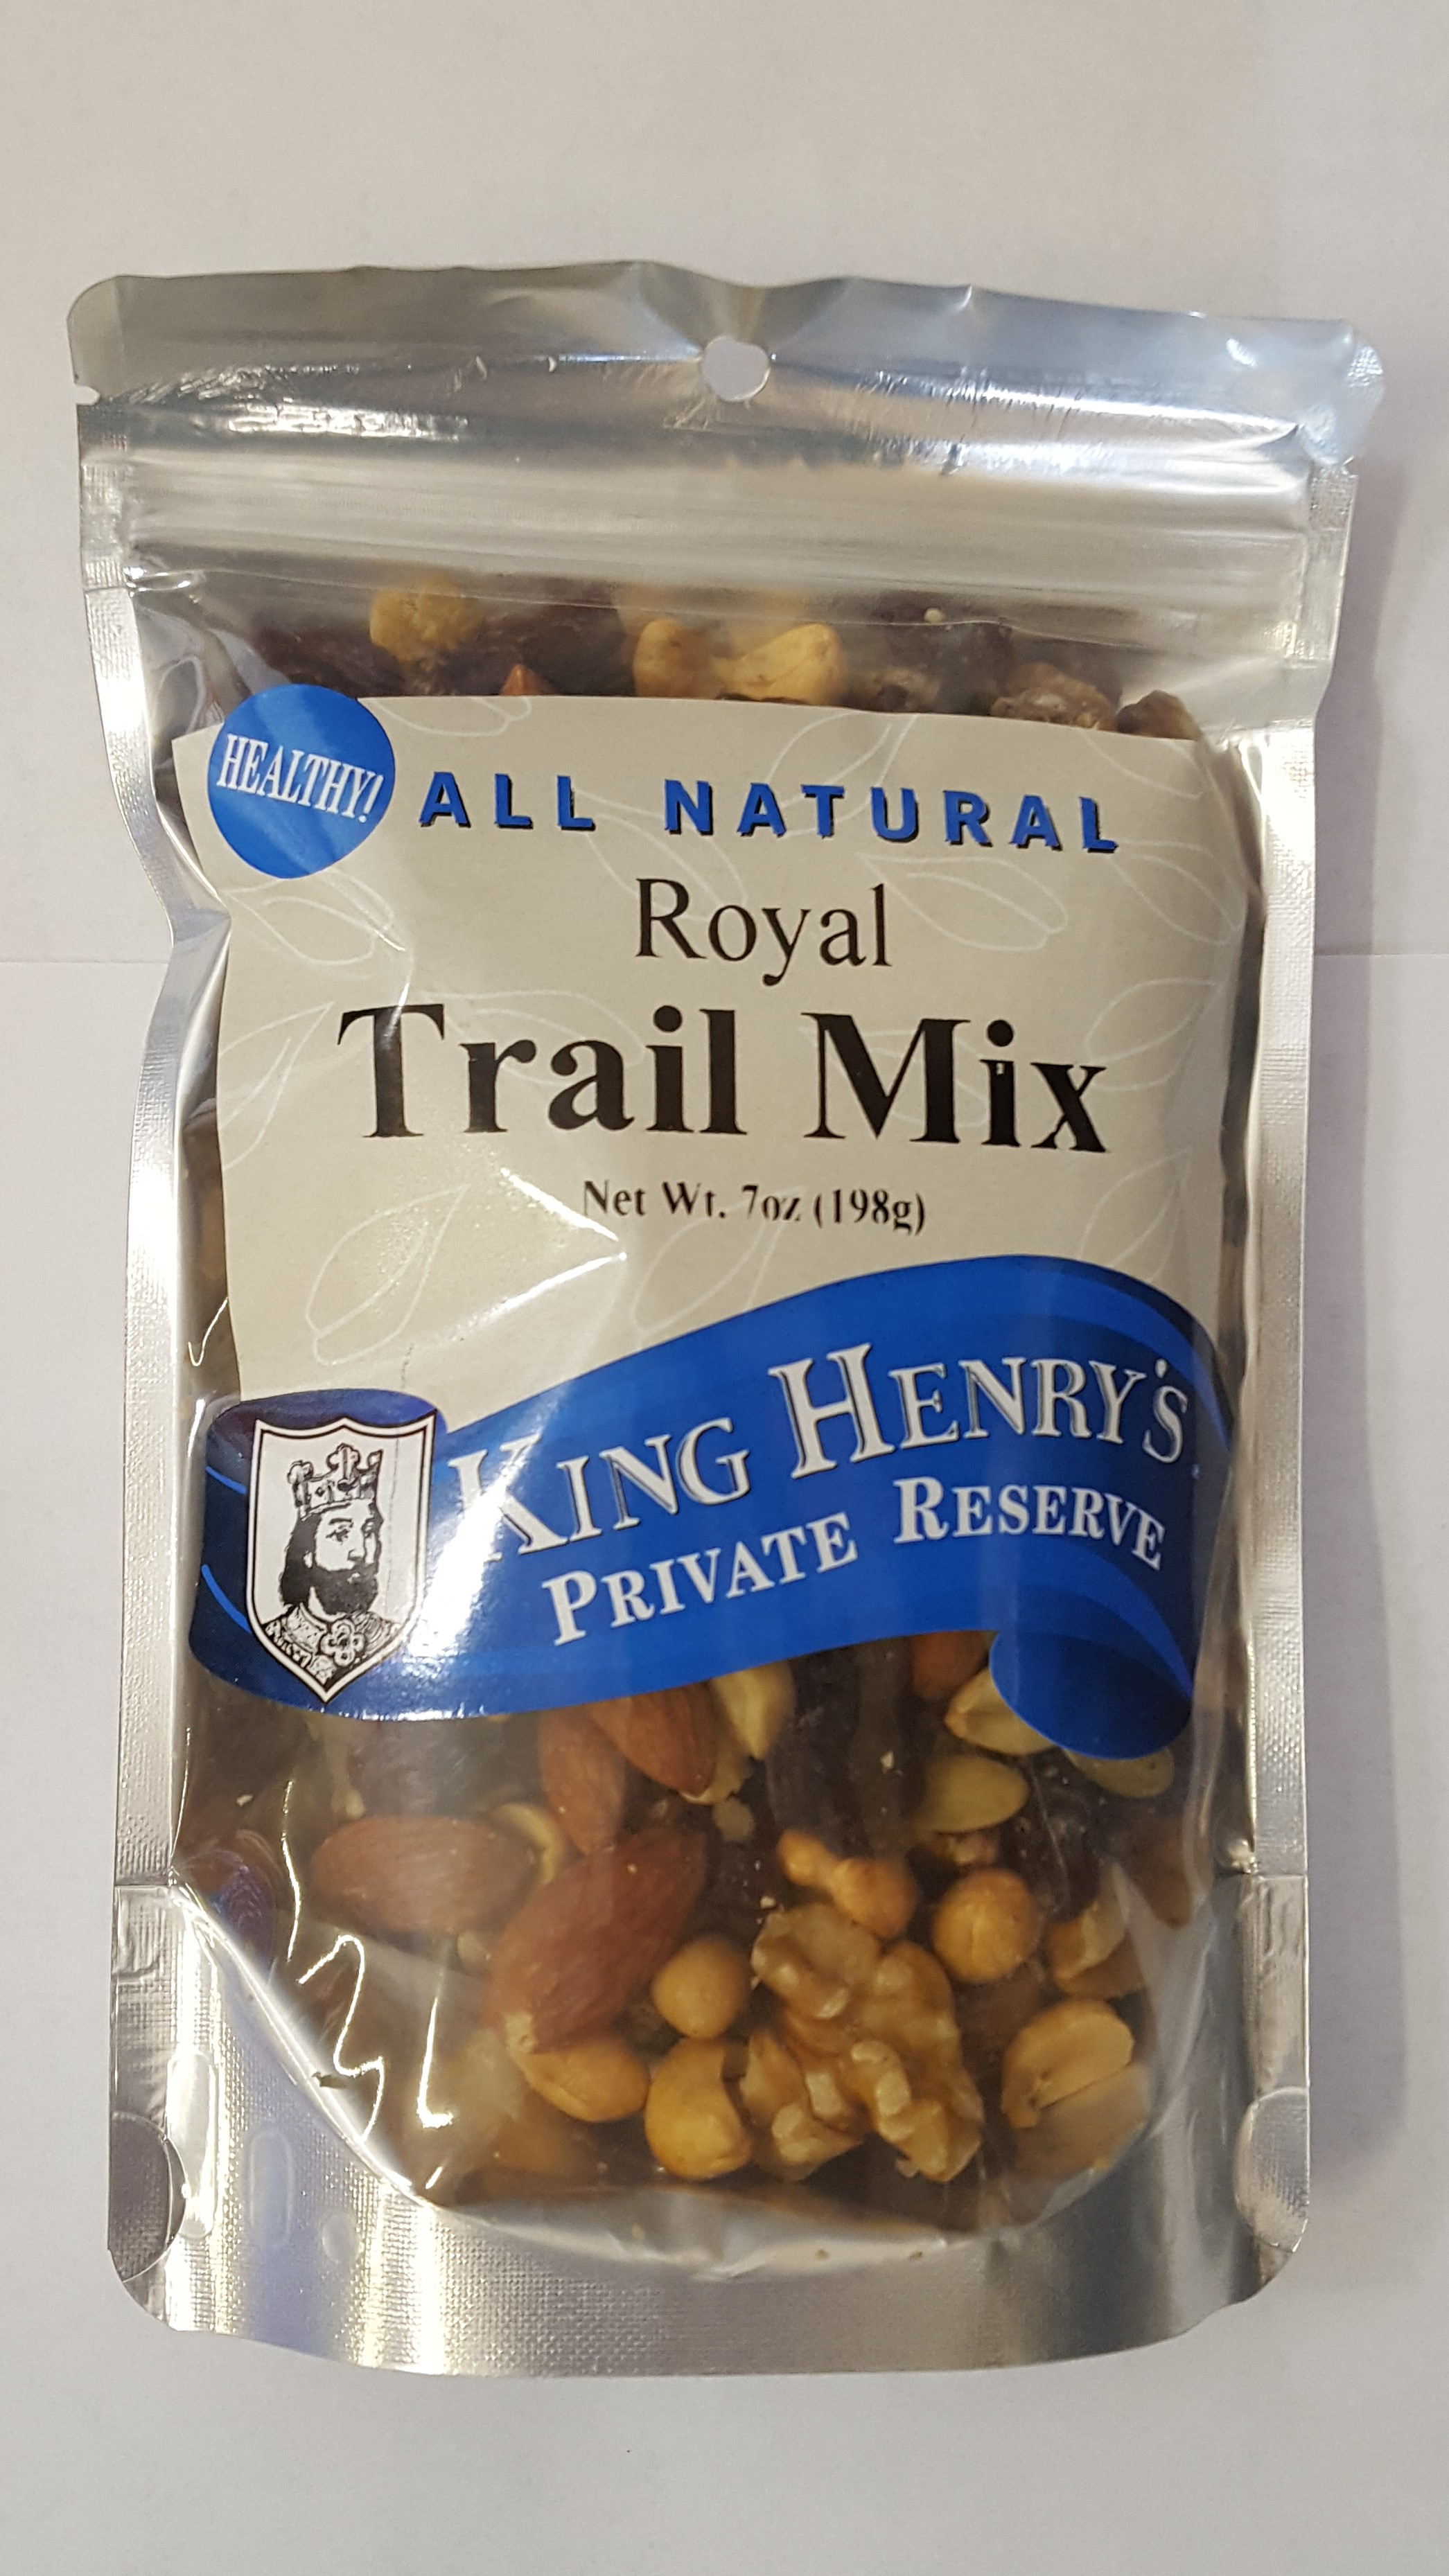 King Henry's Natural Royal Trail Mix